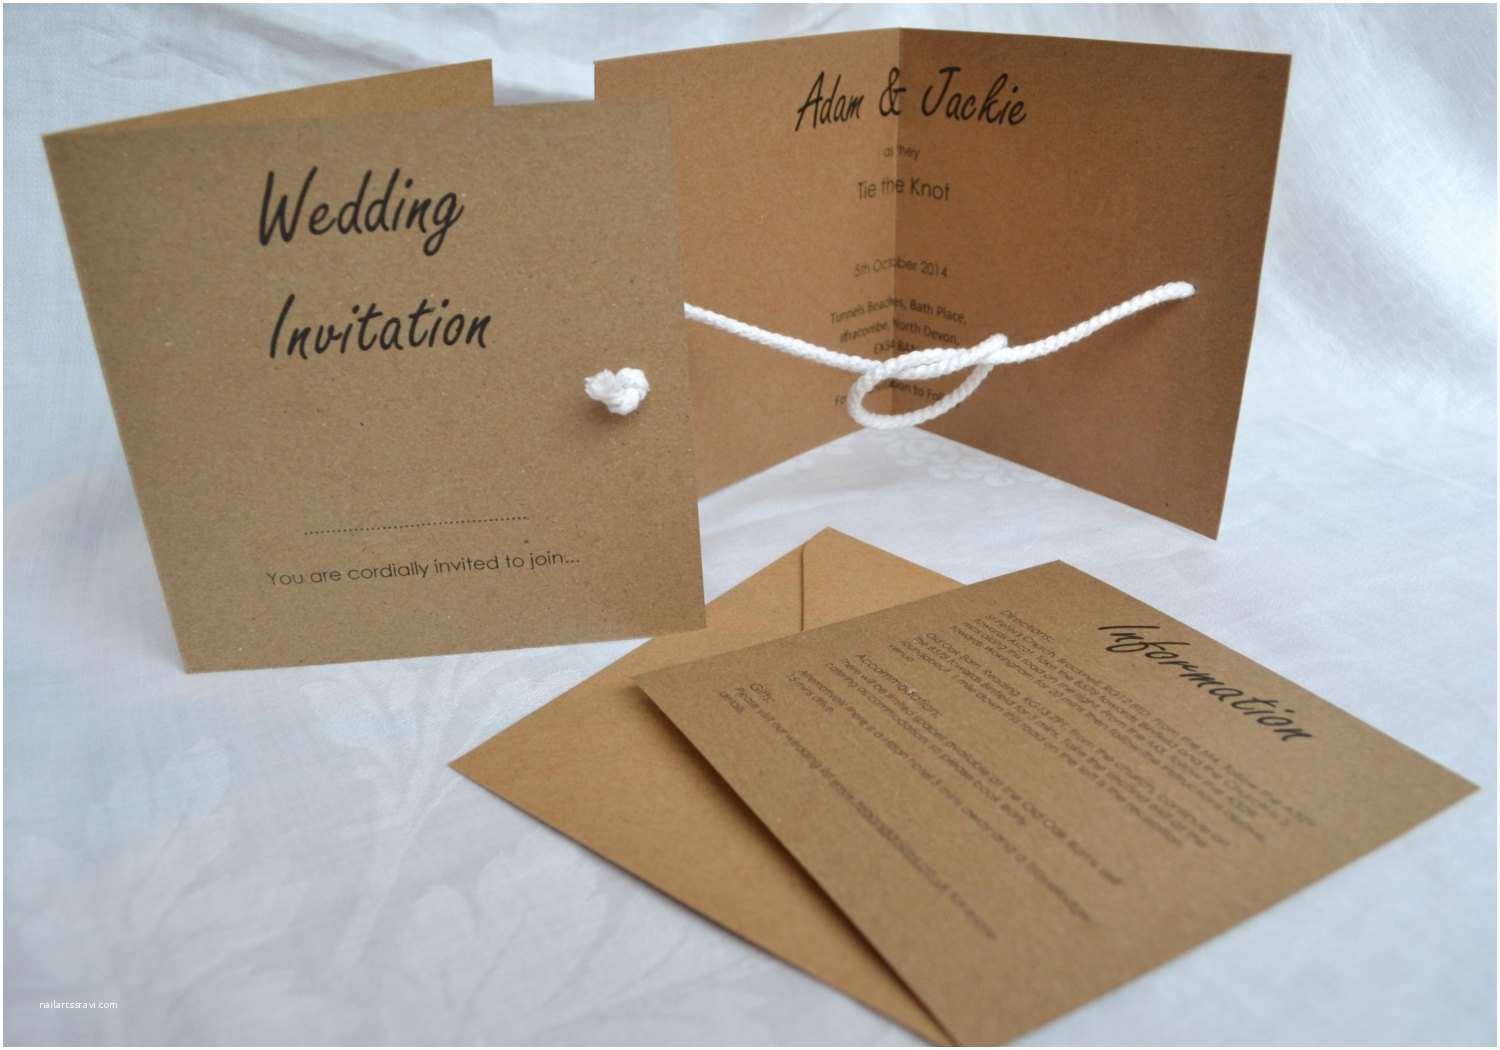 Tying the Knot Wedding Invitations Wedding Invitation Wording Wedding Invitation Templates